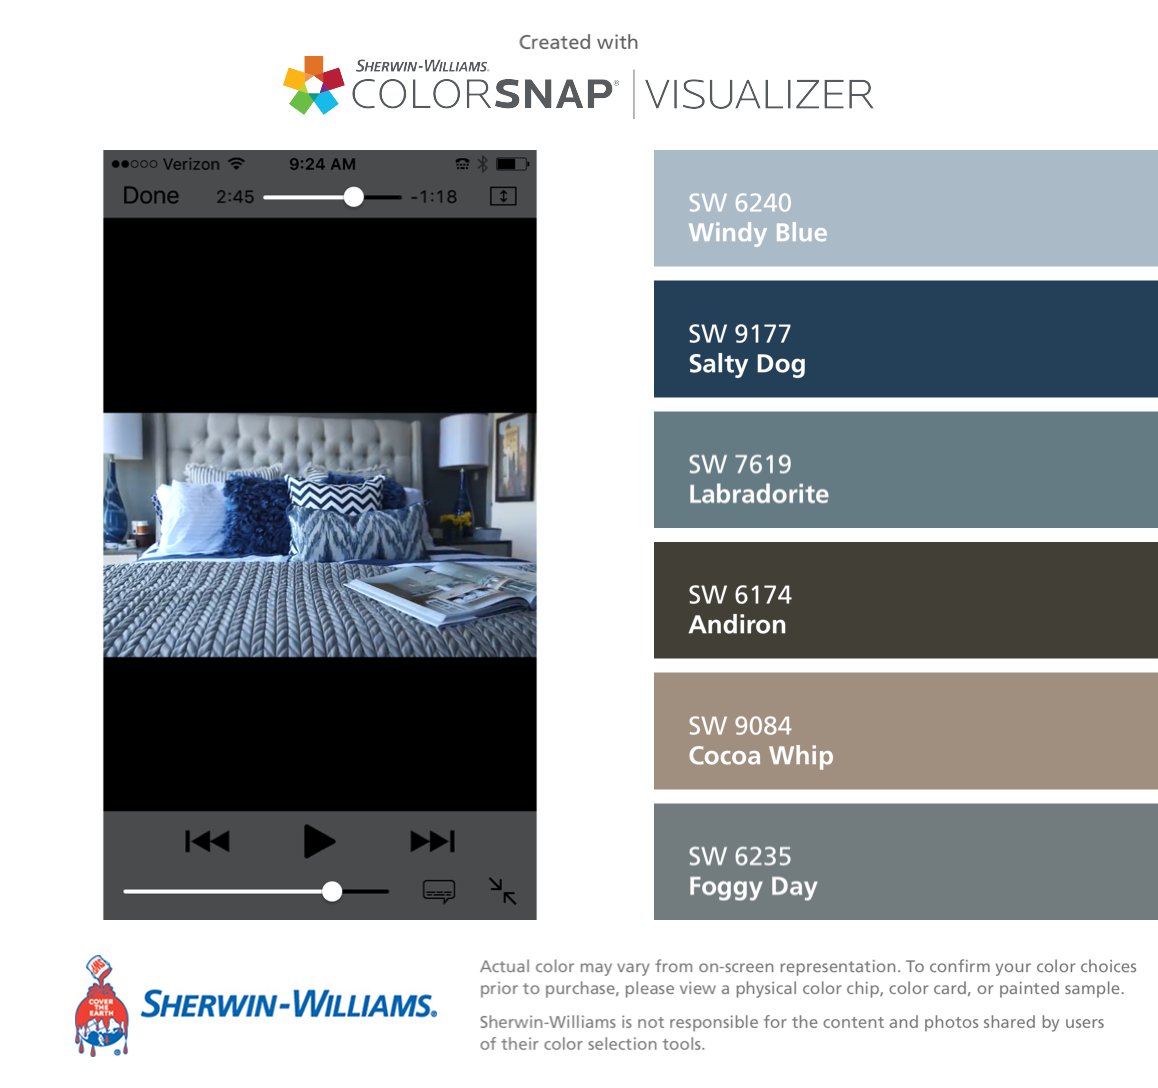 Sherwin williams paint colors sherwin williams 6249 storm cloud - I Found These Colors With Colorsnap Visualizer For Iphone By Sherwin Williams Windy Blue Sw Salty Dog Sw Labradorite Sw Andiron Sw Cocoa Whip Sw